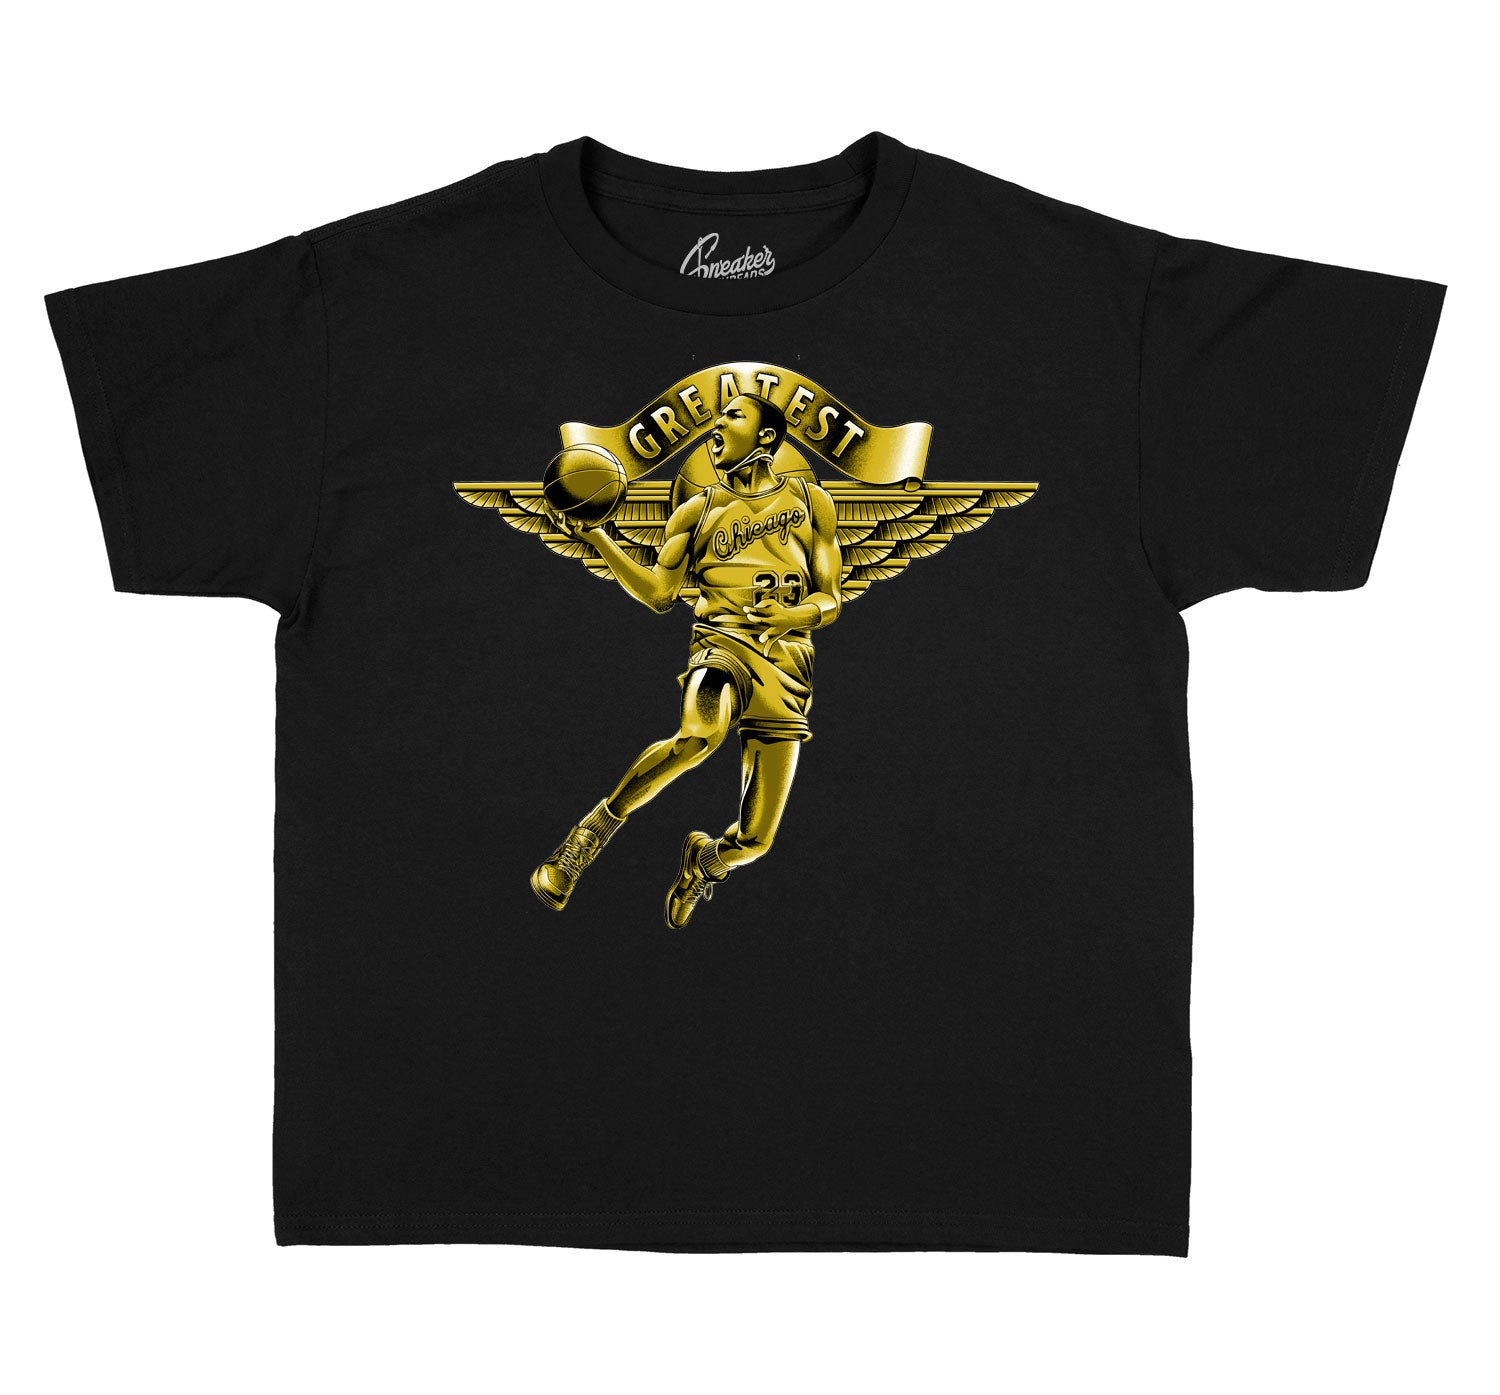 Black and Gold Jordan 1 sneaker collection matches with kids t shirt